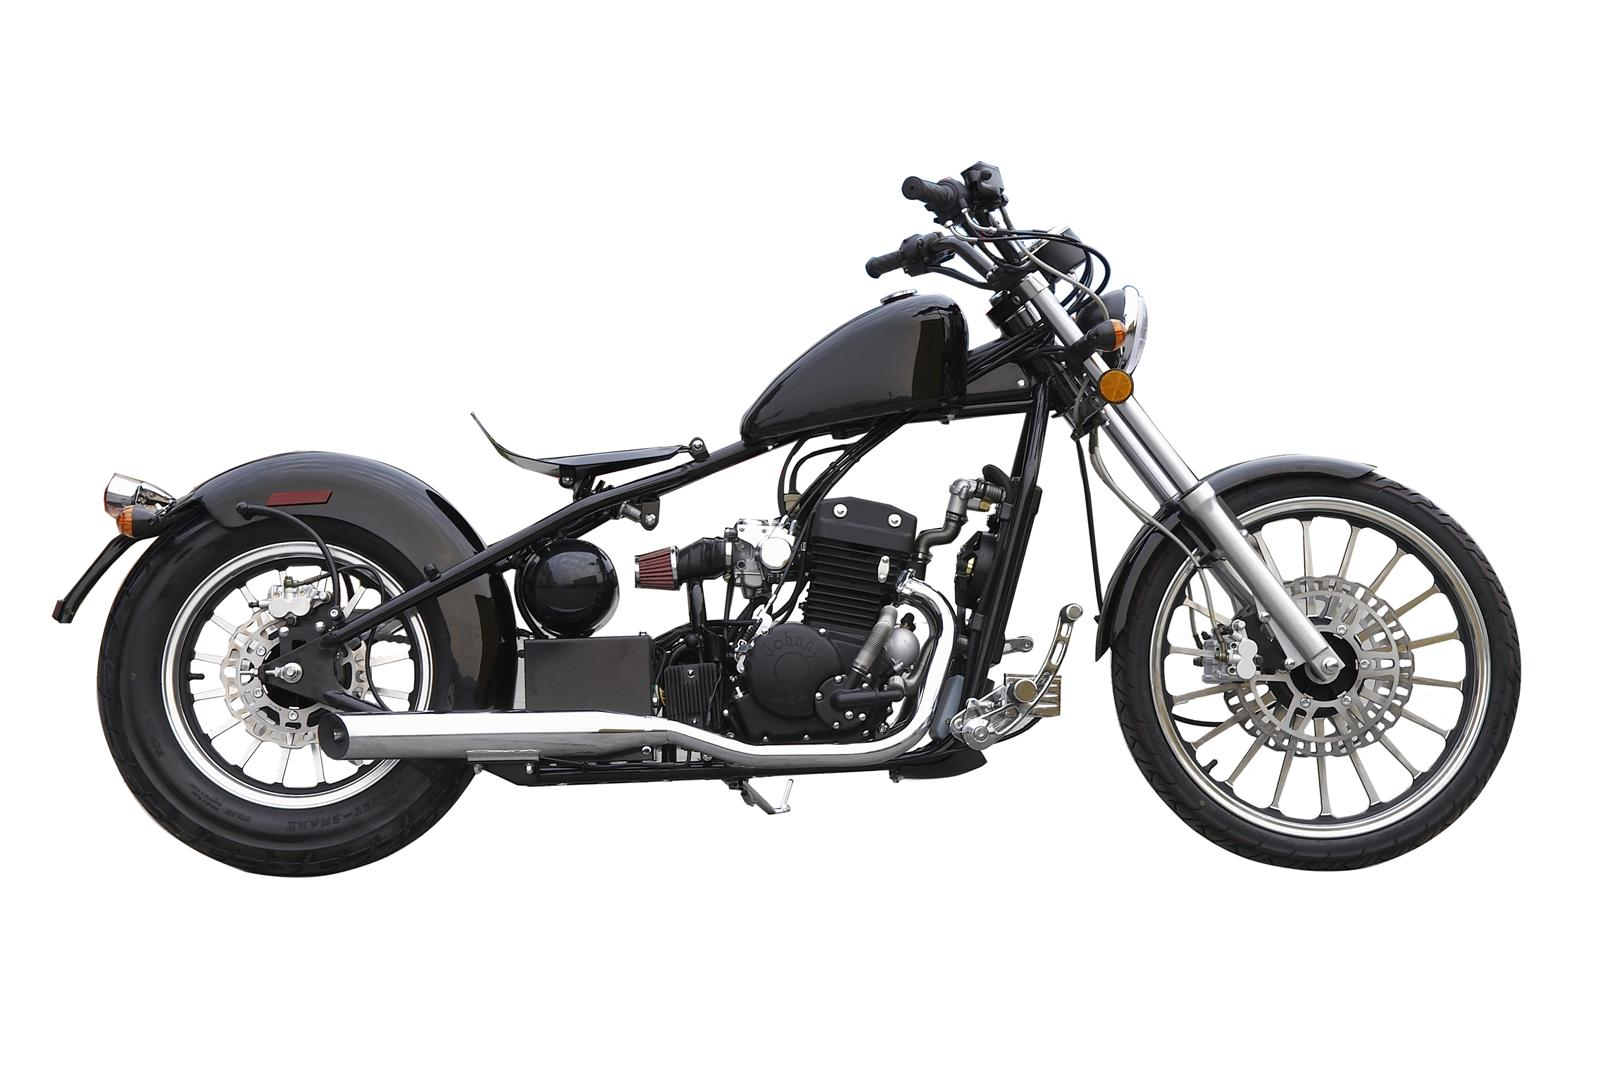 Ajs bobber photo - 1